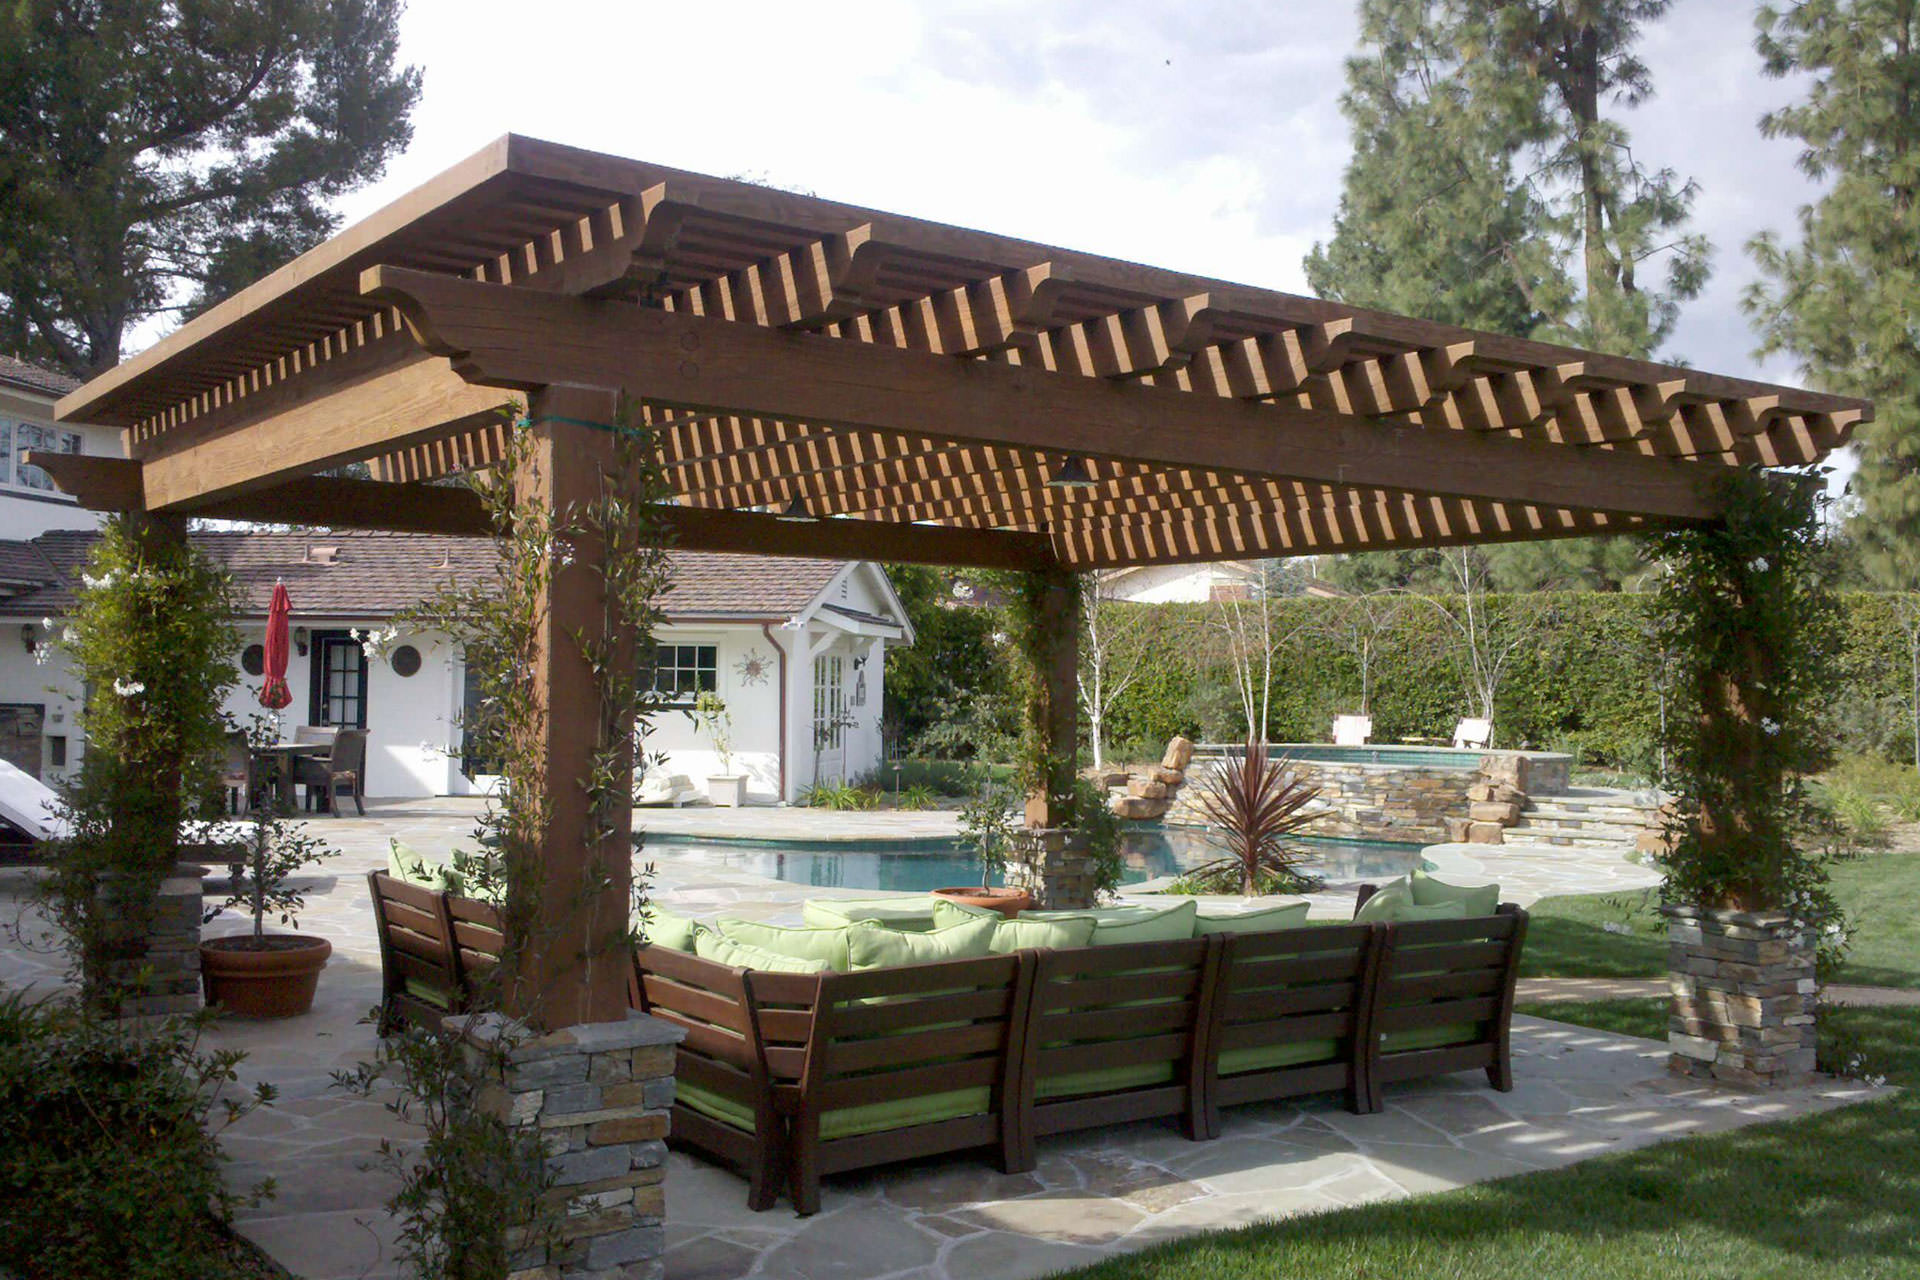 Pergola Roof Ideas: What You Need to Know | ShadeFX Canopies